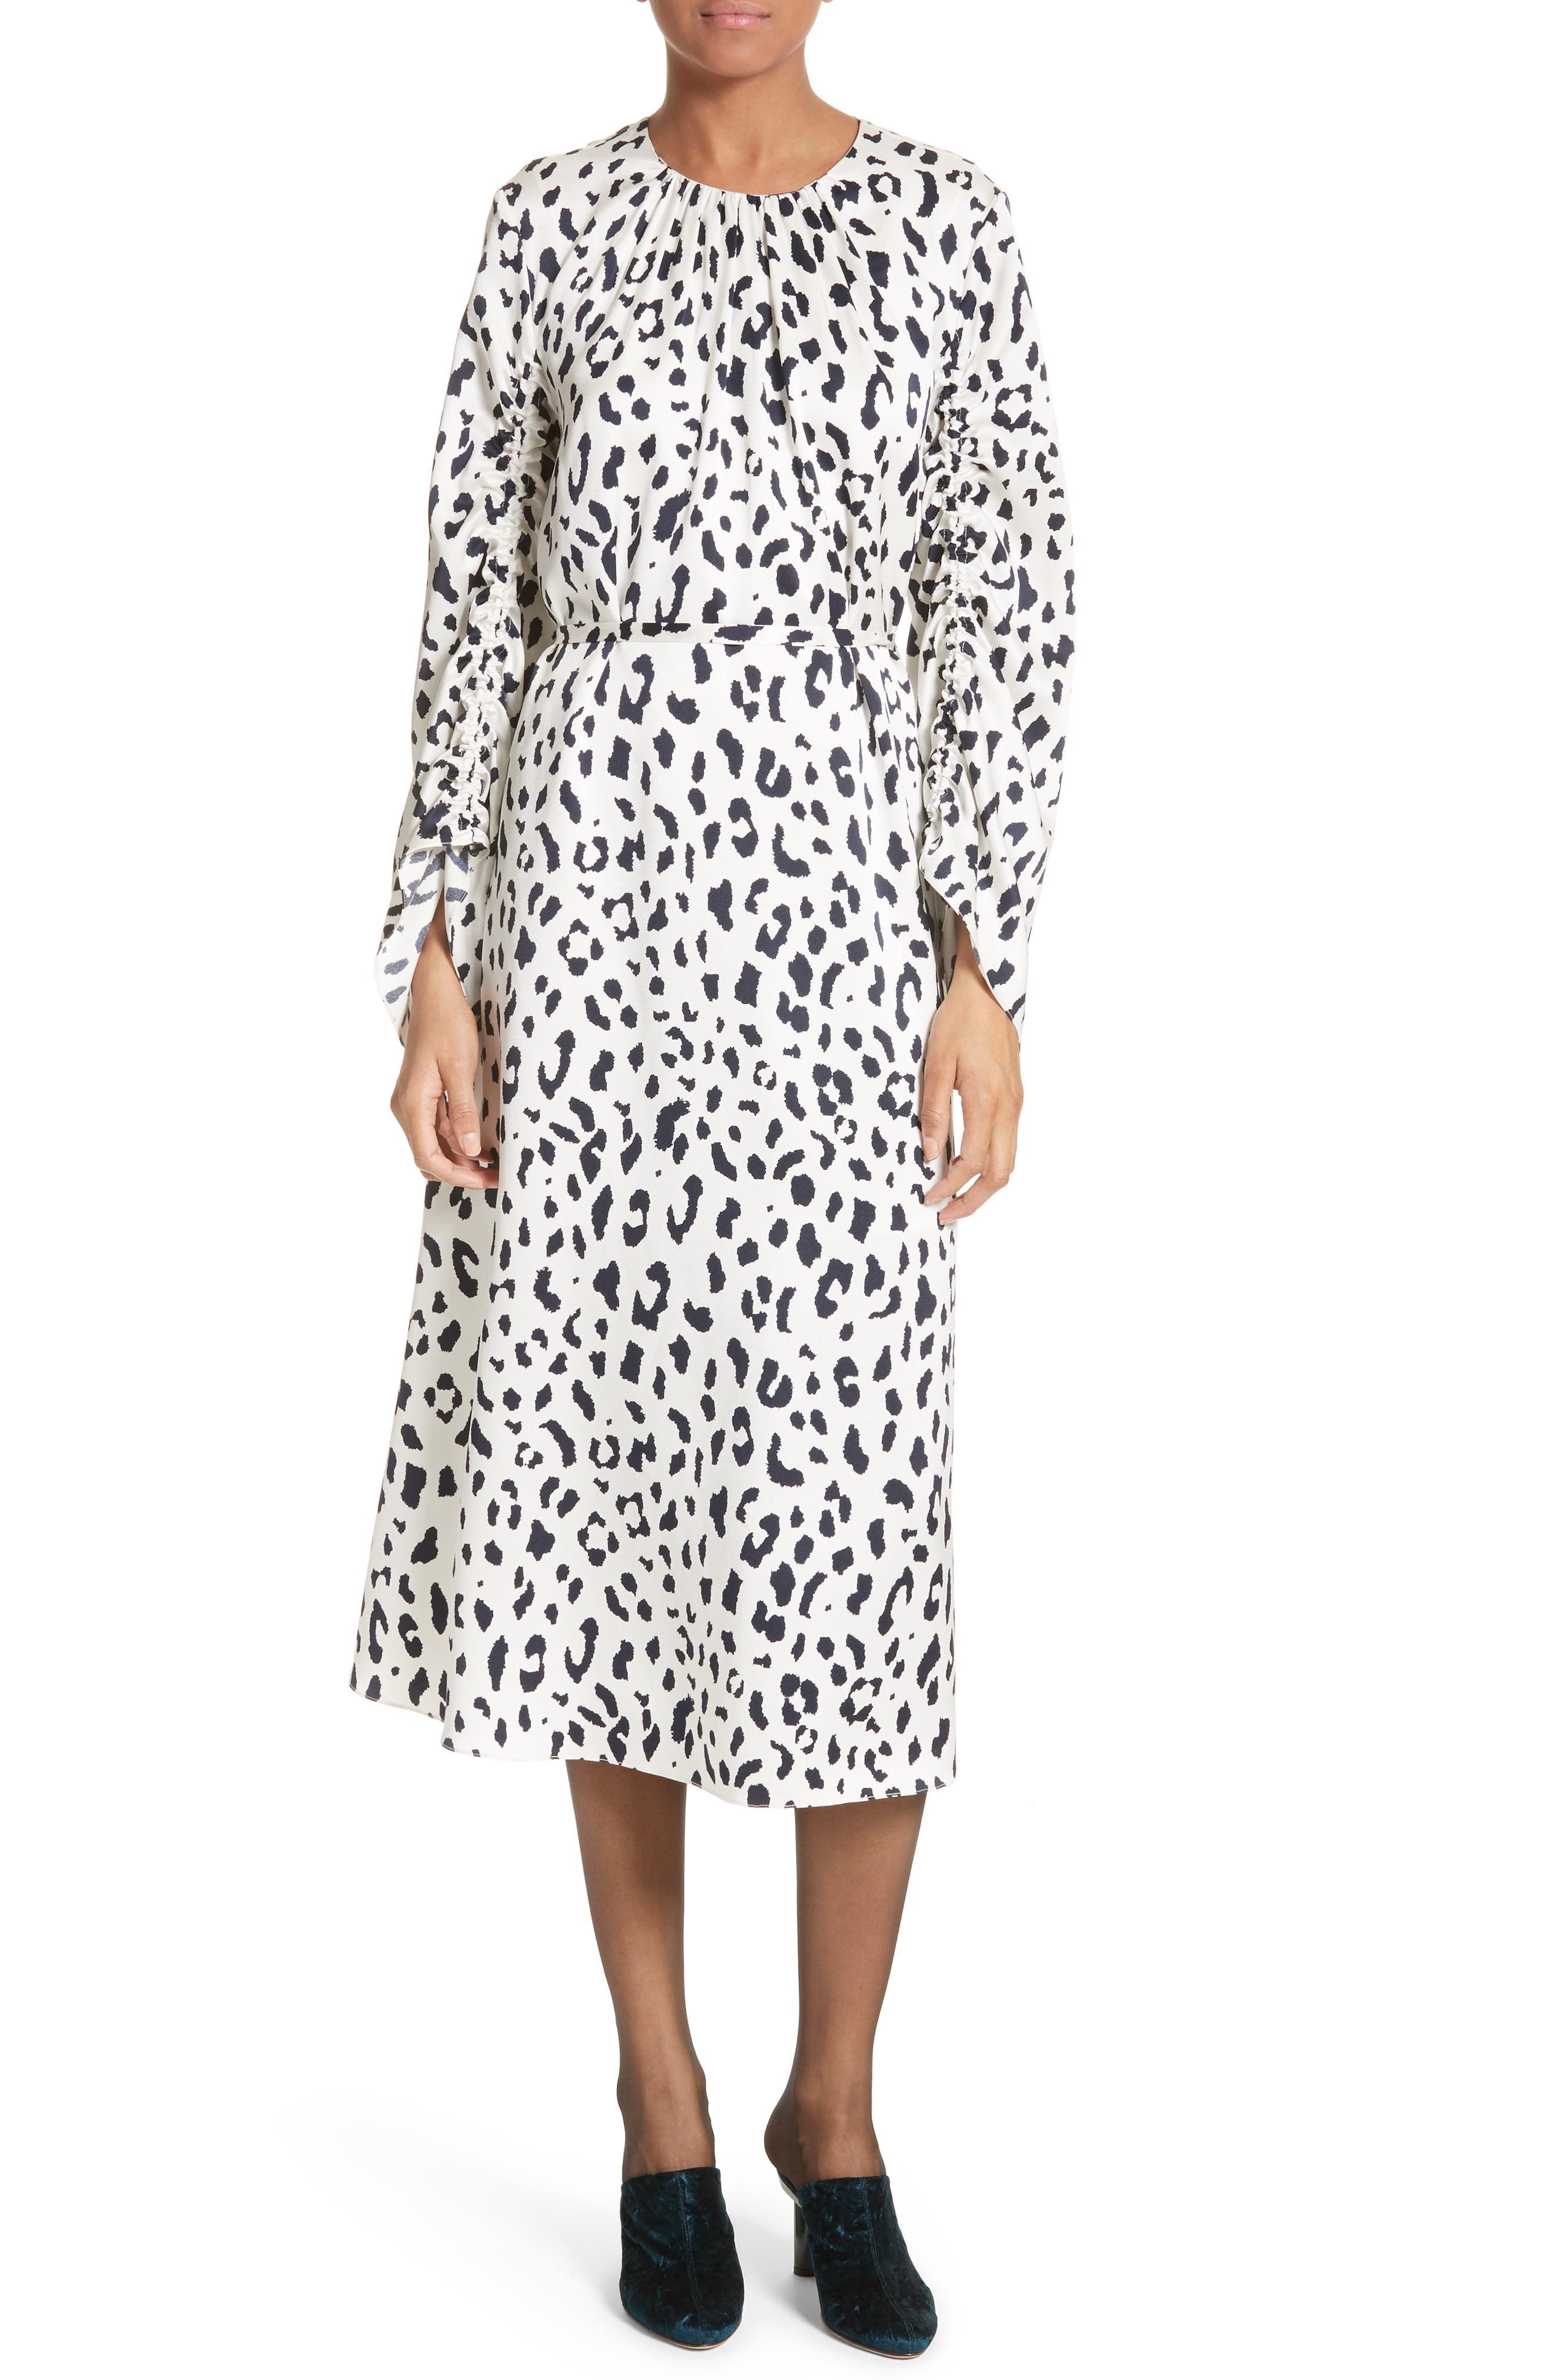 TIBI Cheetah Satin Dress